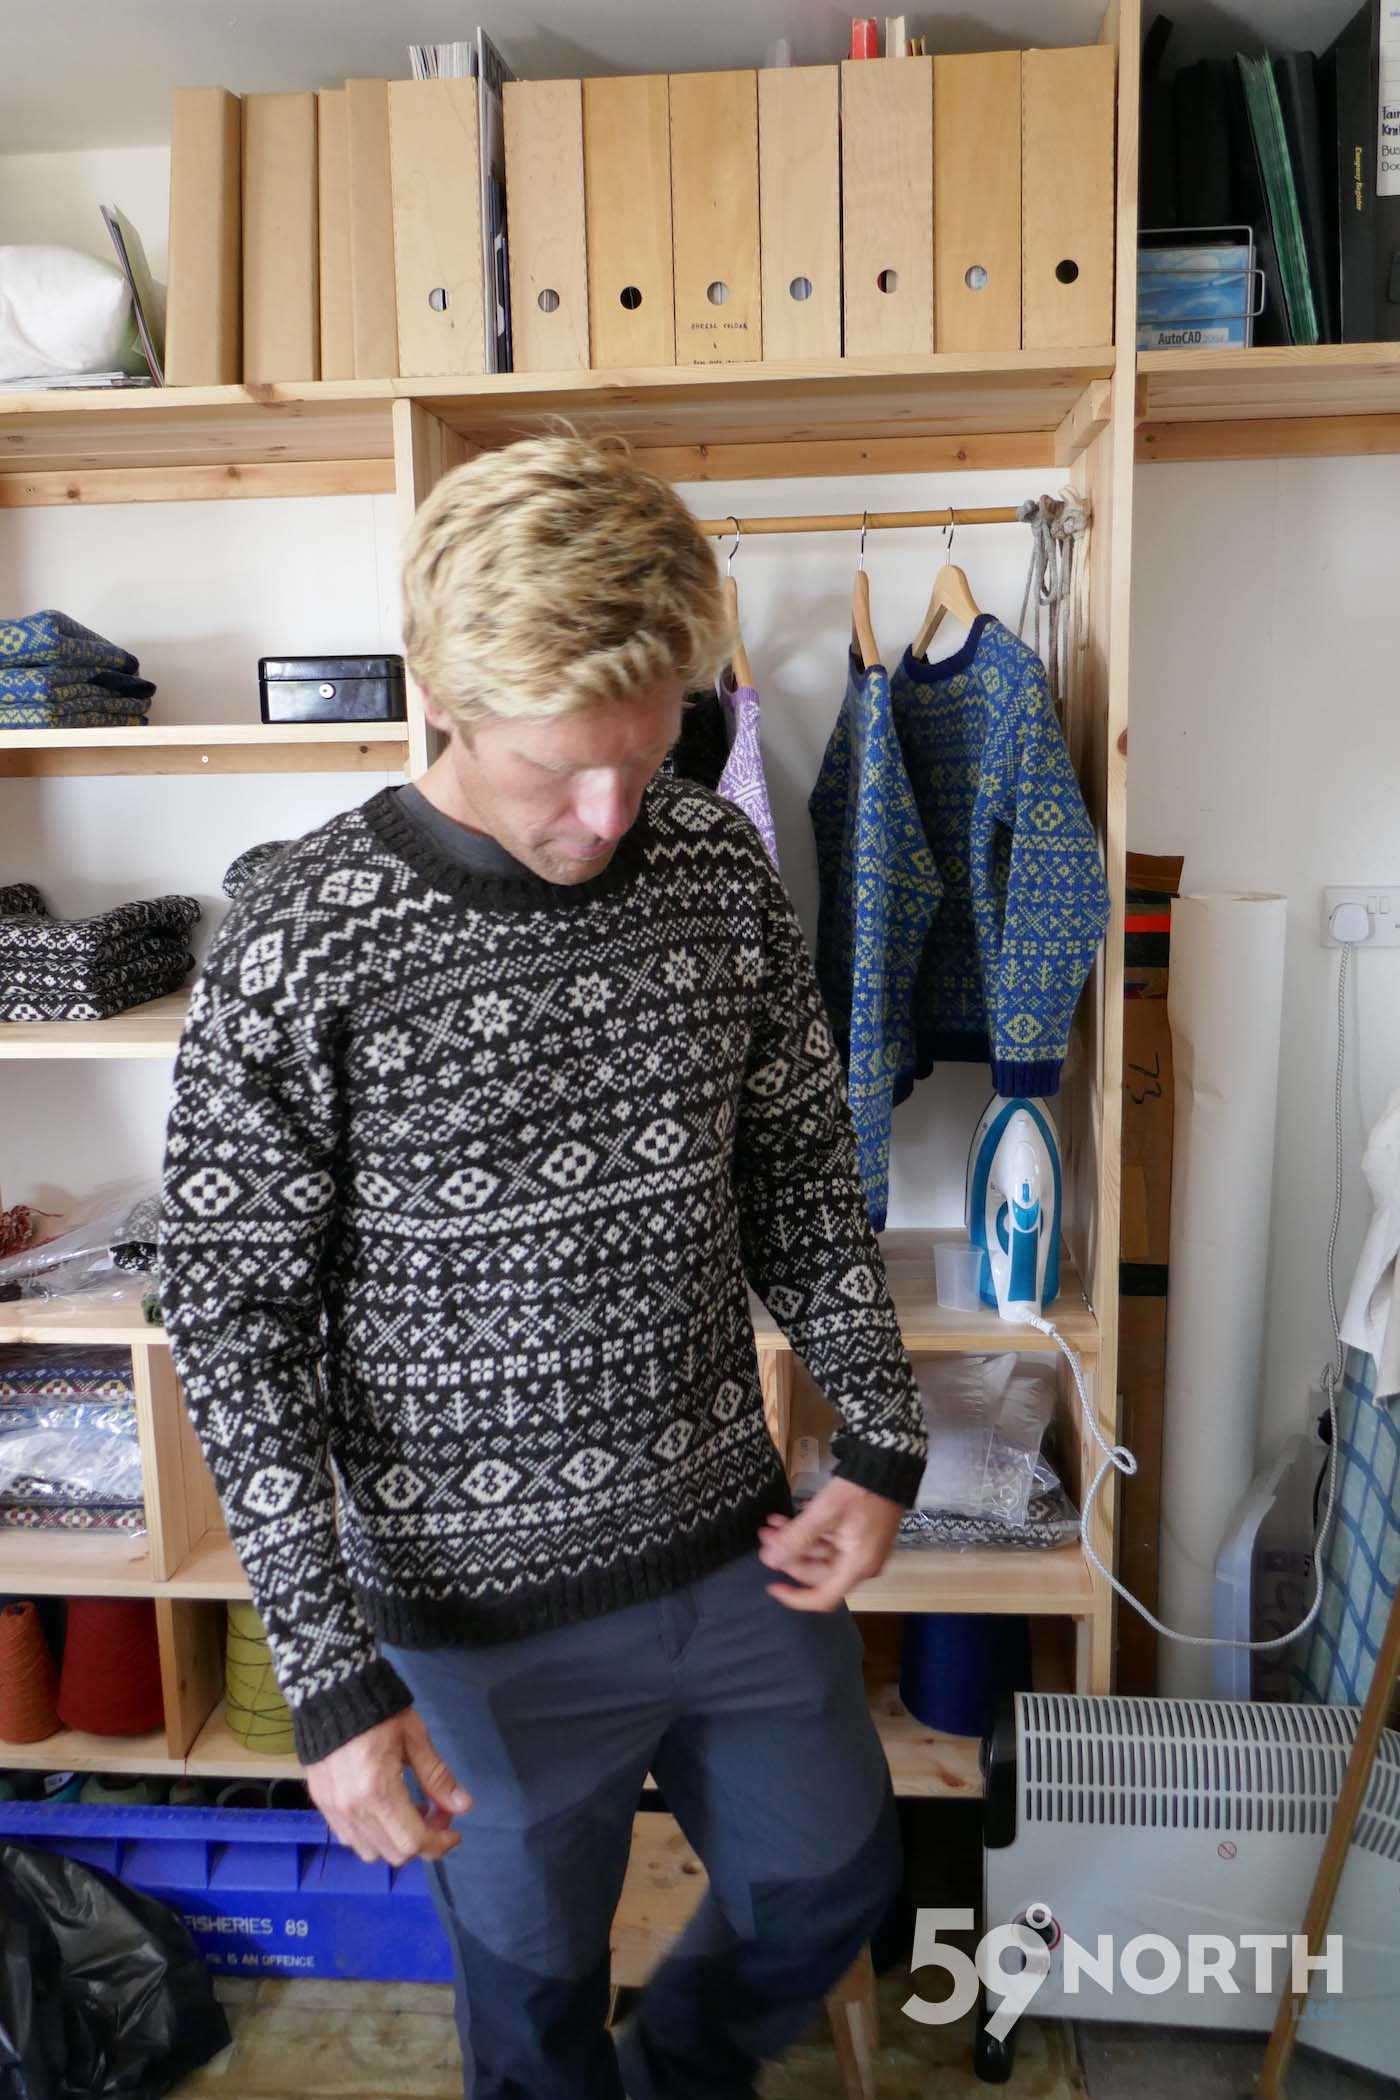 Fair Isle knitted sweater!!  Leg 8, 2017: Sweden to Scotland 59-north.com